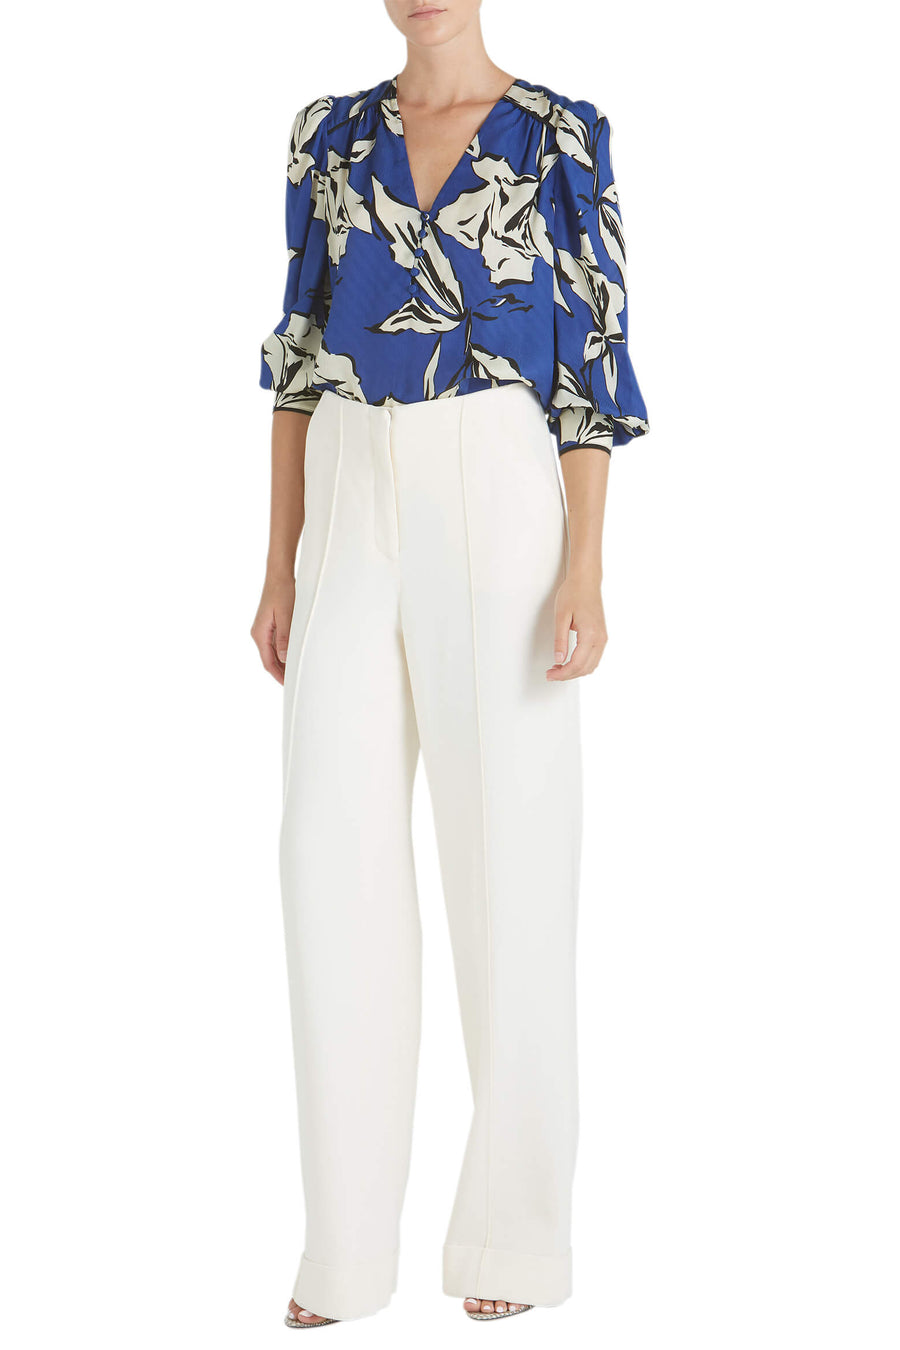 Veronica Beard Milan Long Sleeve Floral Top from The New Trend